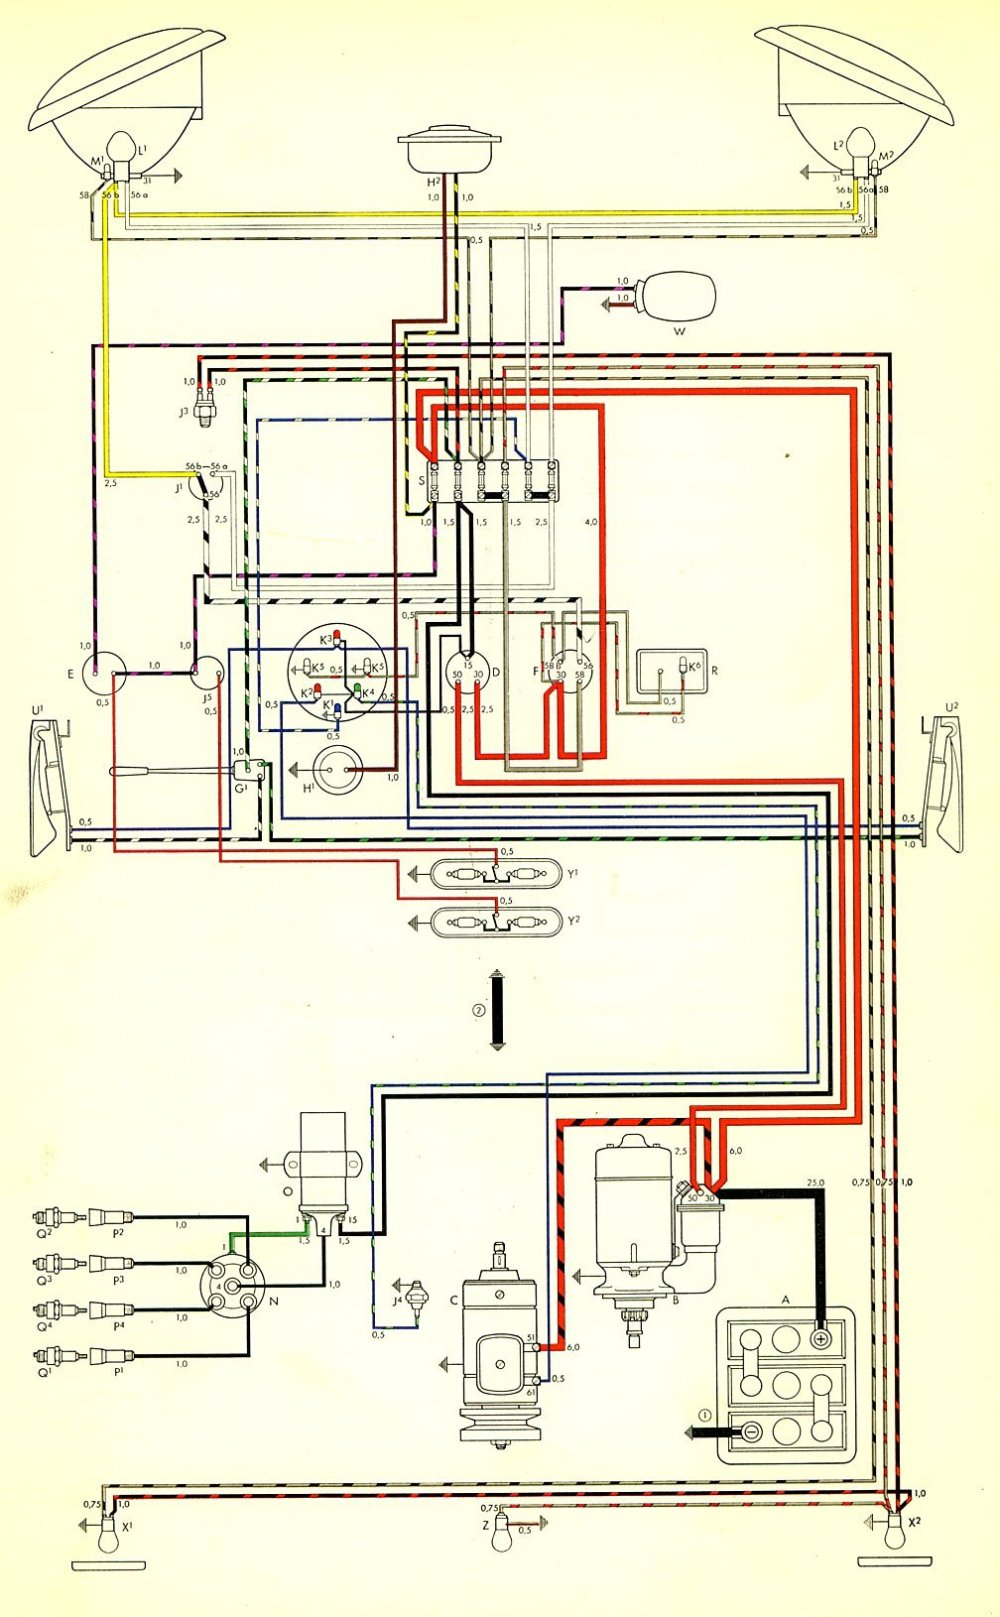 medium resolution of thesamba com type 2 wiring diagrams 1973 vw bus fuse box diagram vw bus fuse diagram